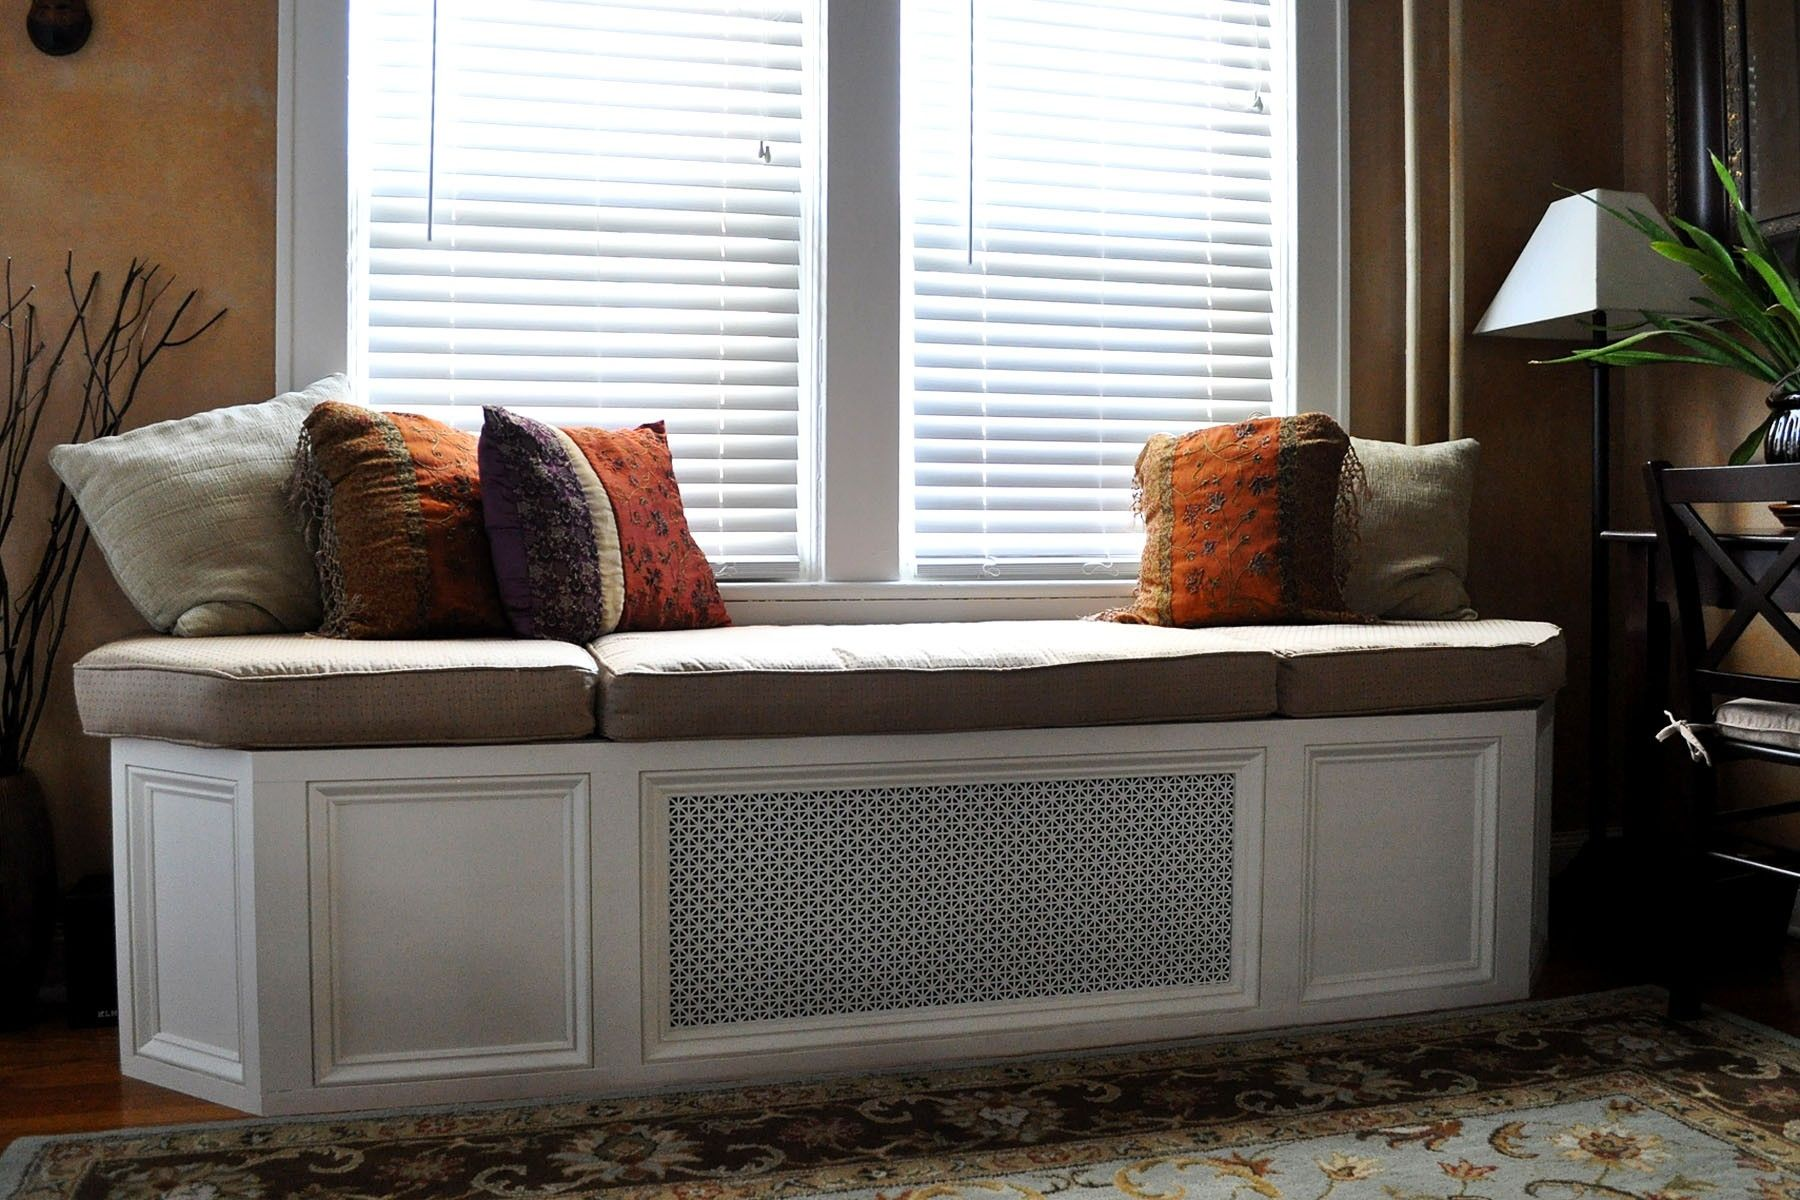 Bedroom Bench Under Window